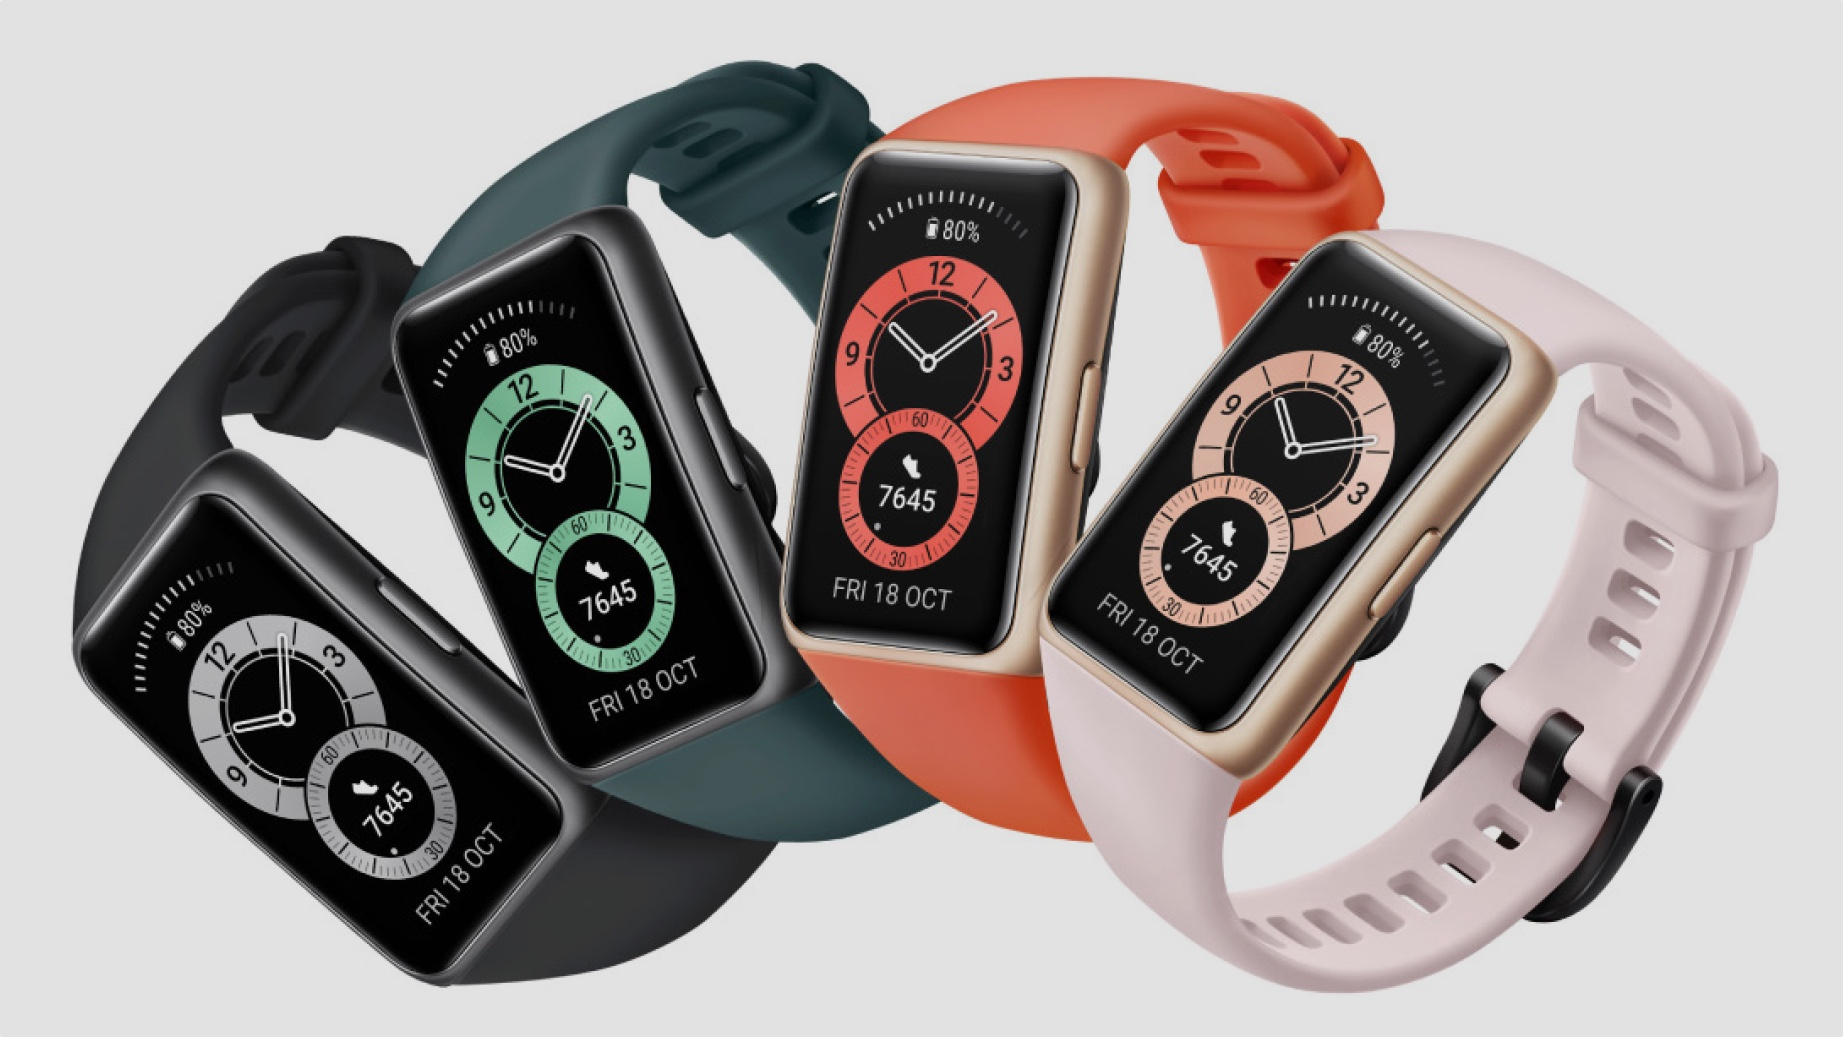 Huawei Band 6 blurs the lines